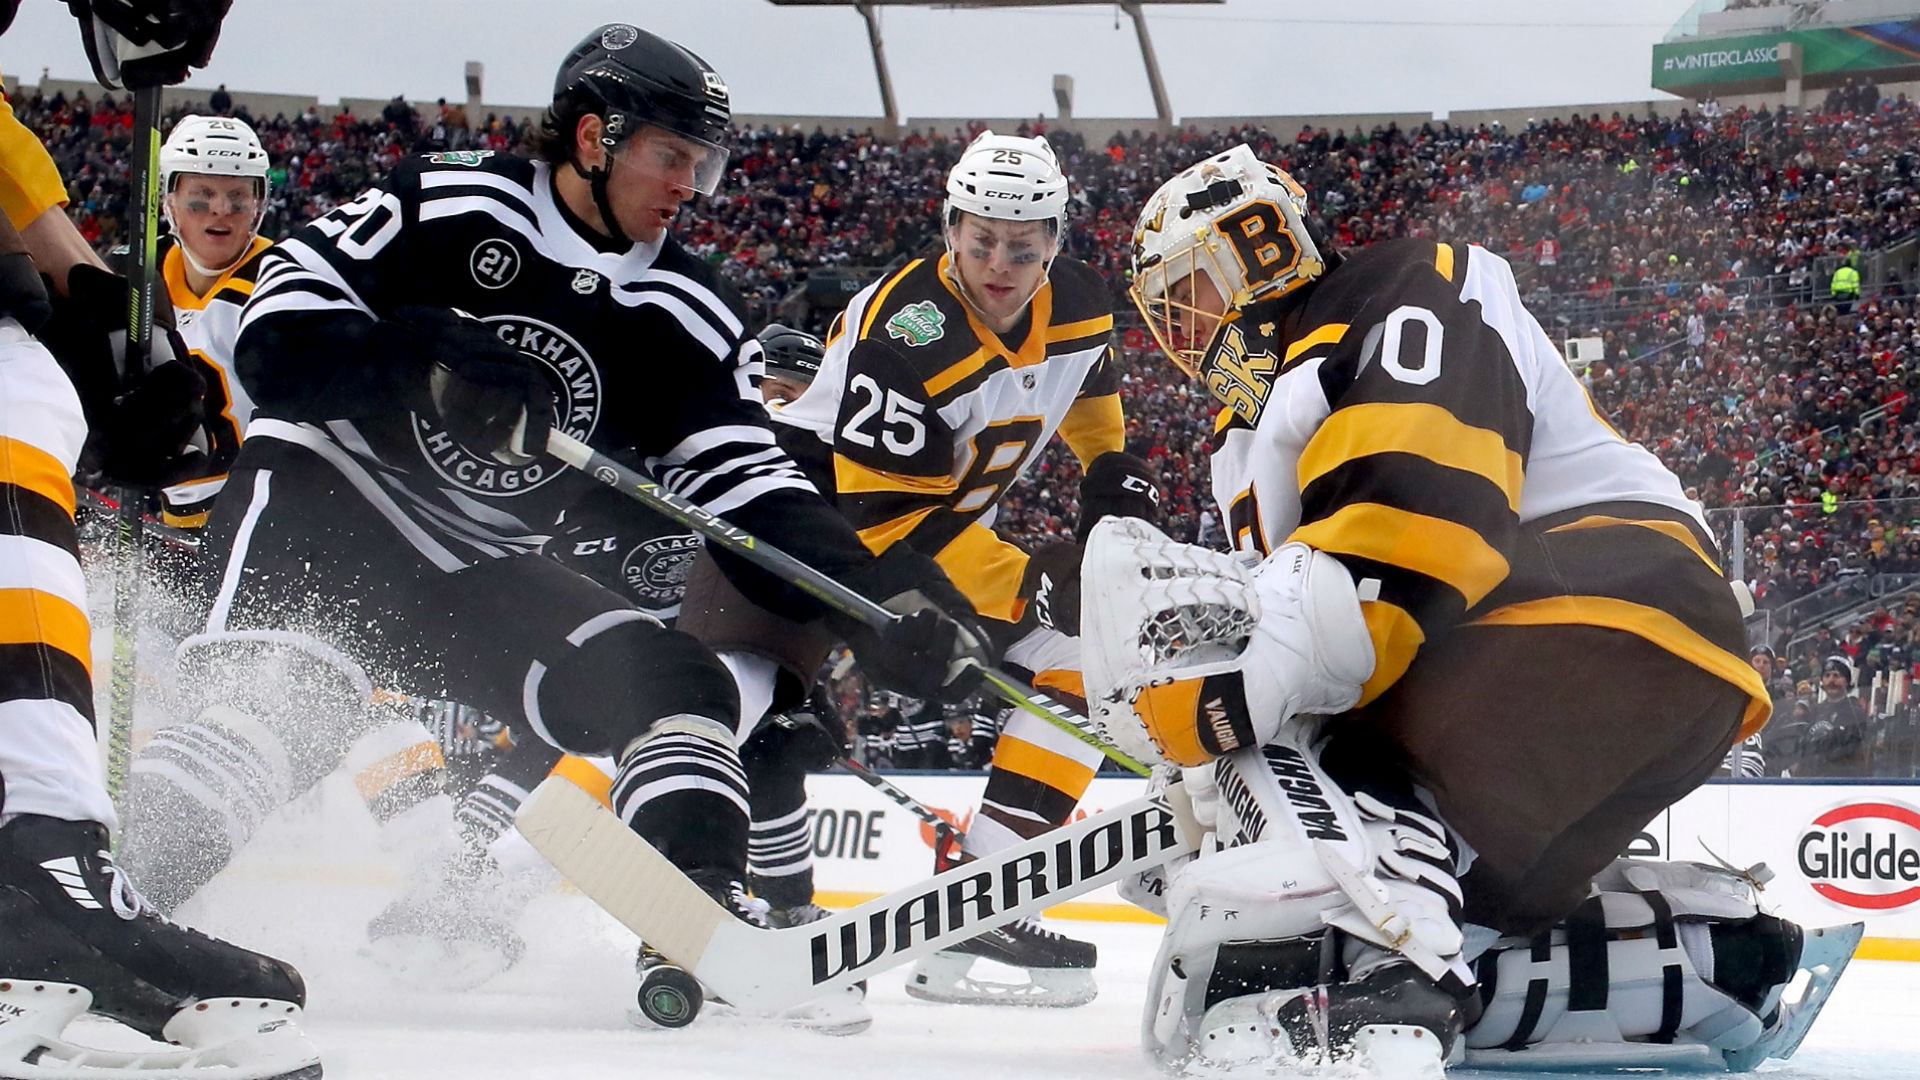 b46a49280c2 NHL Winter Classic 2019 results: Score, highlights from Bruins' win over  Blackhawks outdoors